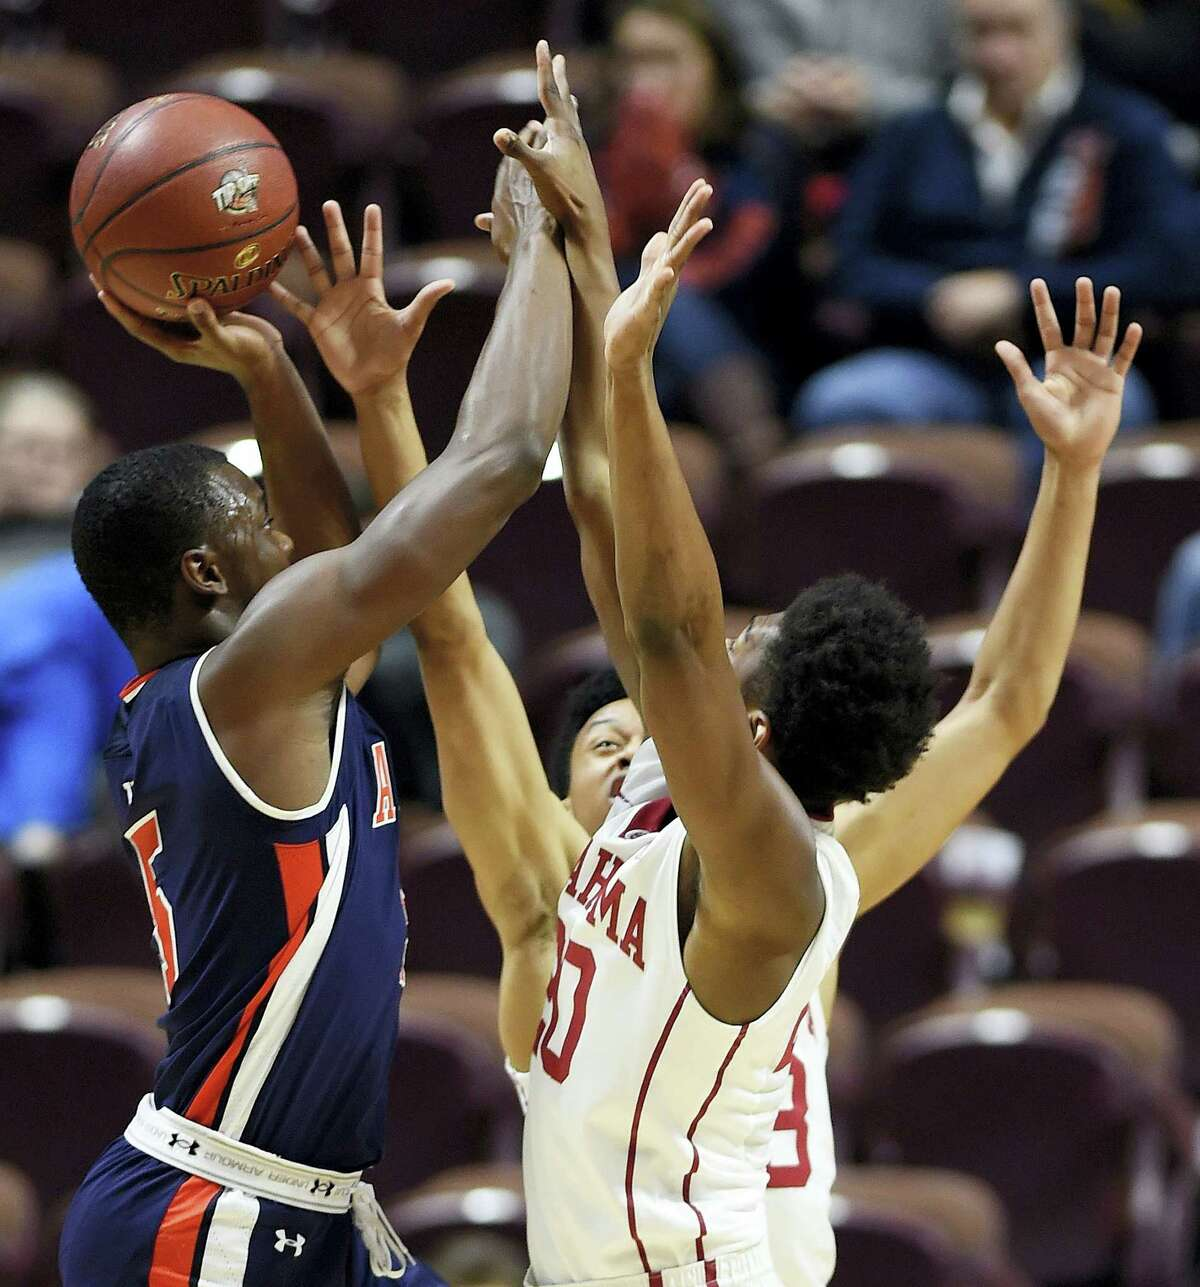 Auburn's Mutapha Heron (5) shoots over Oklahoma defenders Marshall Thorpe, front, and Jordan Shepard, back, during Wednesday's game at the Mohegan Sun Arena in Uncasville.